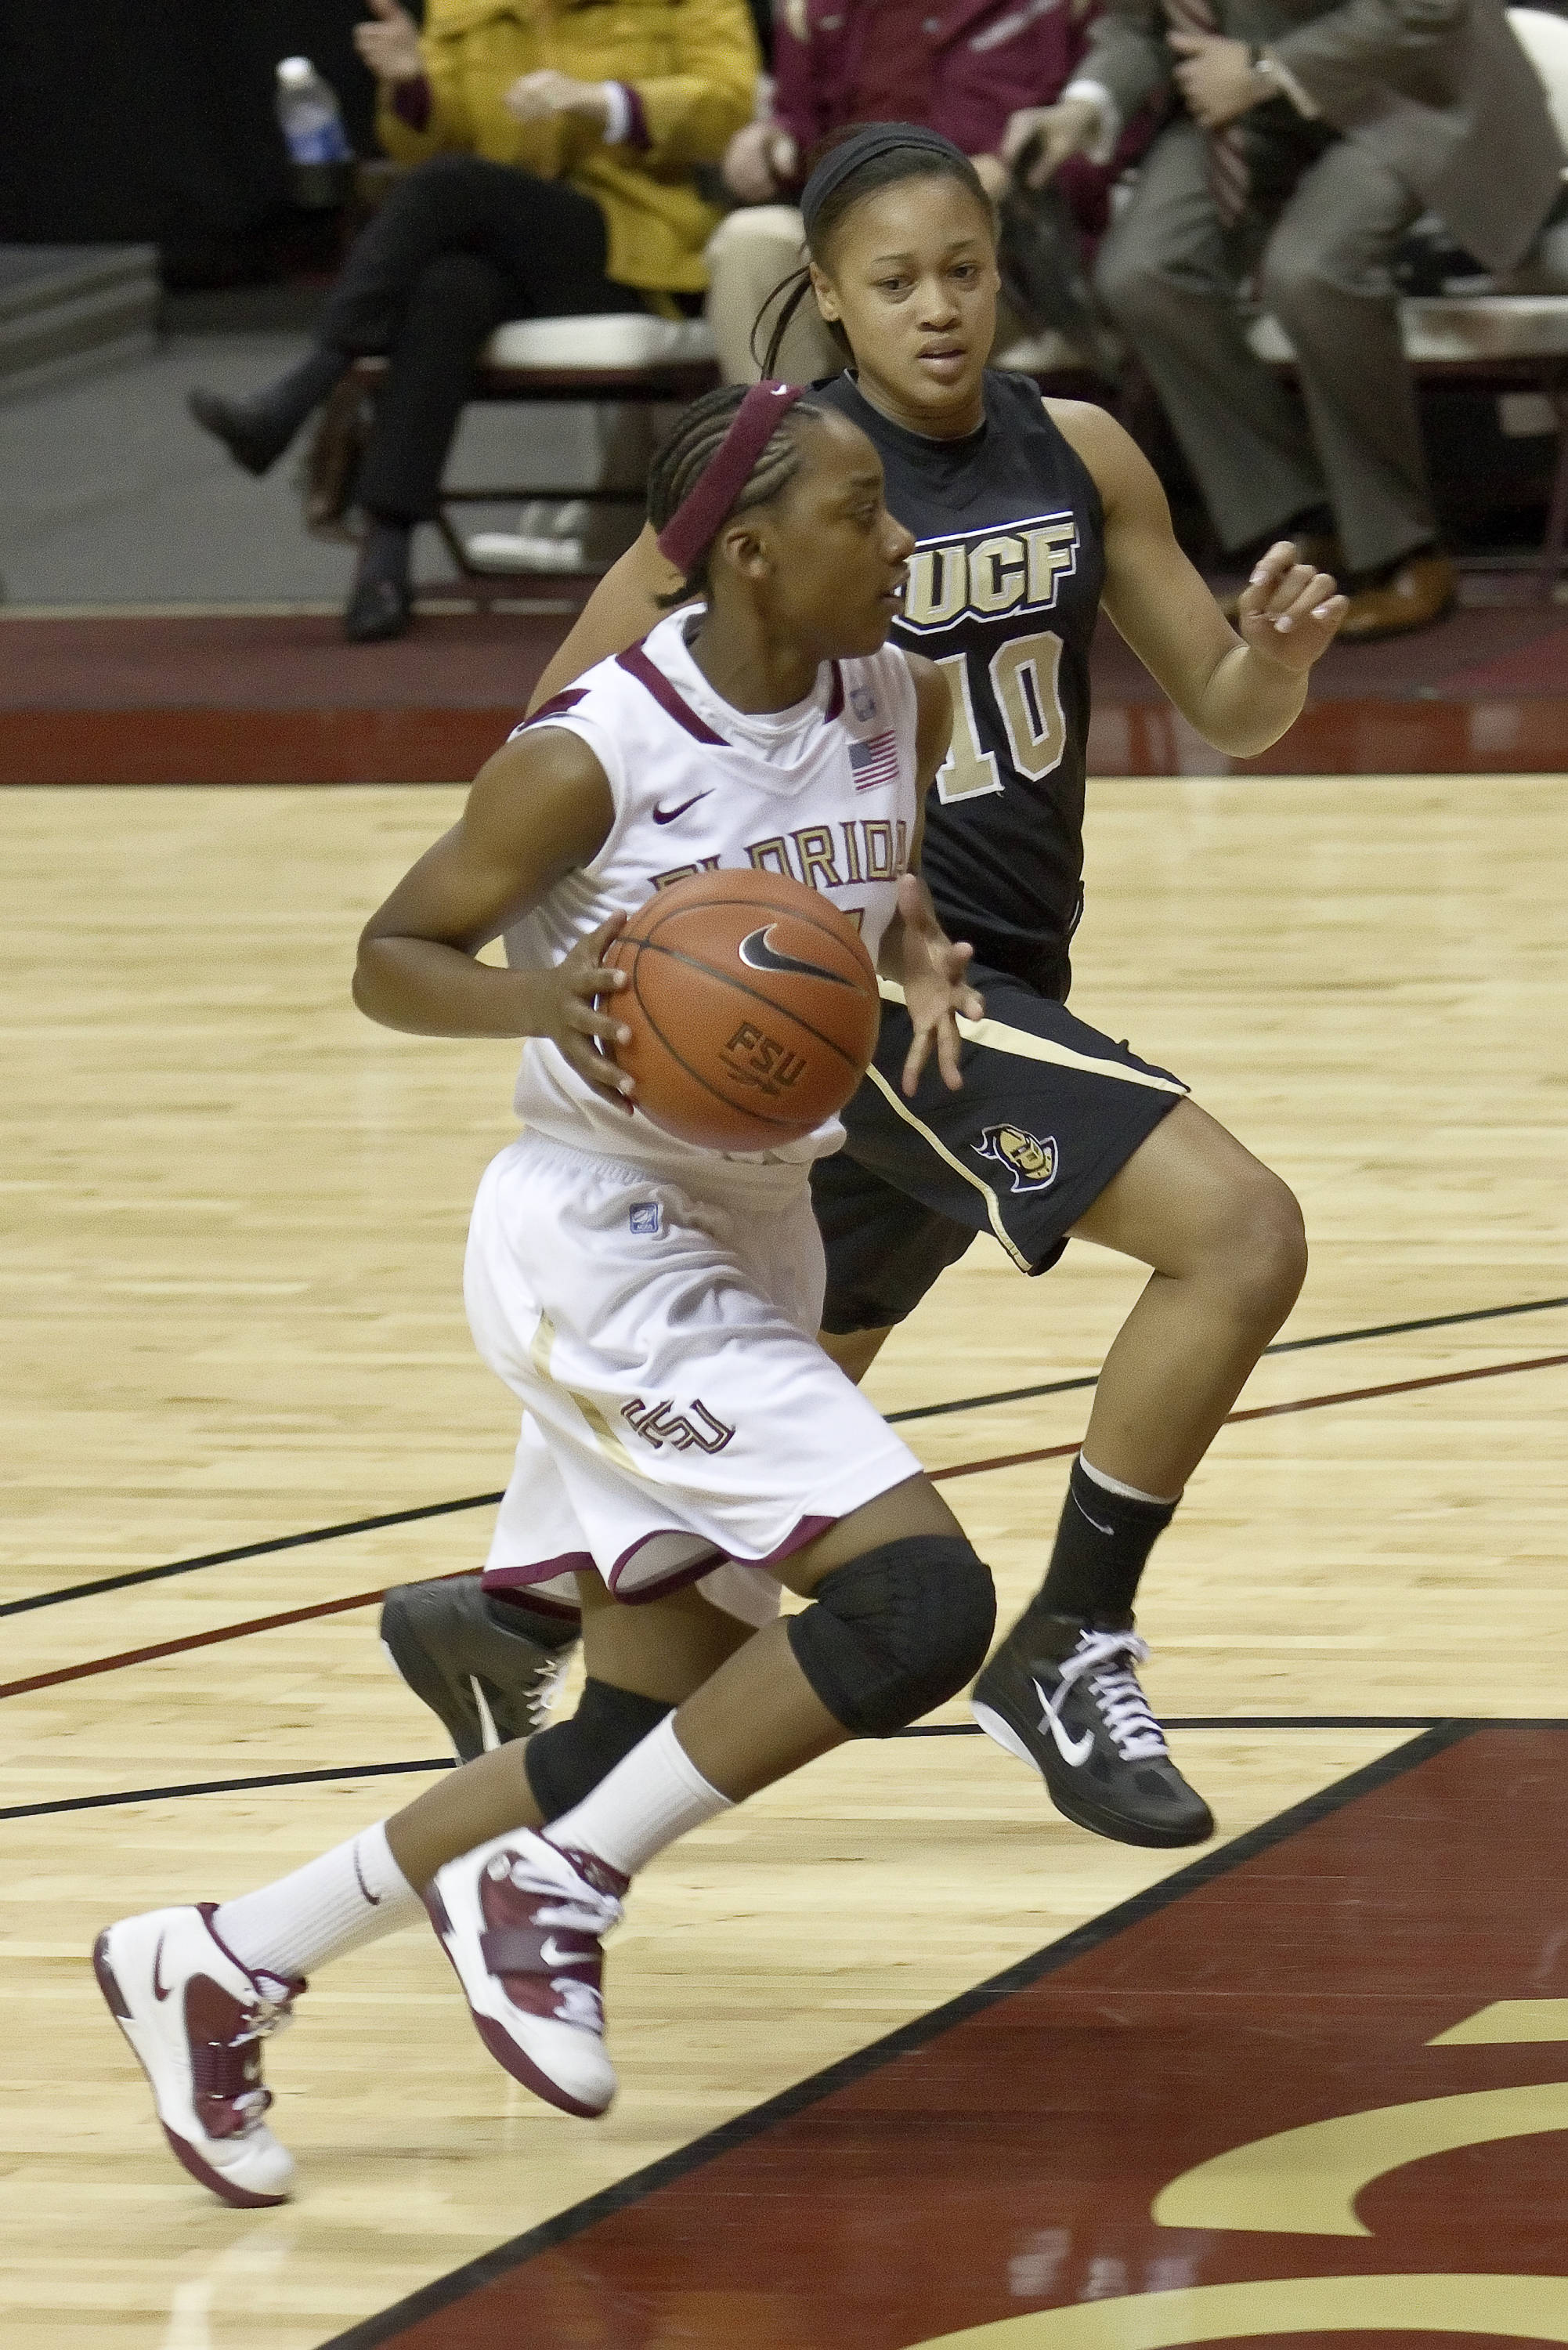 FSU vs UCF - 12/15/10 - Tay'ler Mingo (14)#$%^Photo by Steve Musco